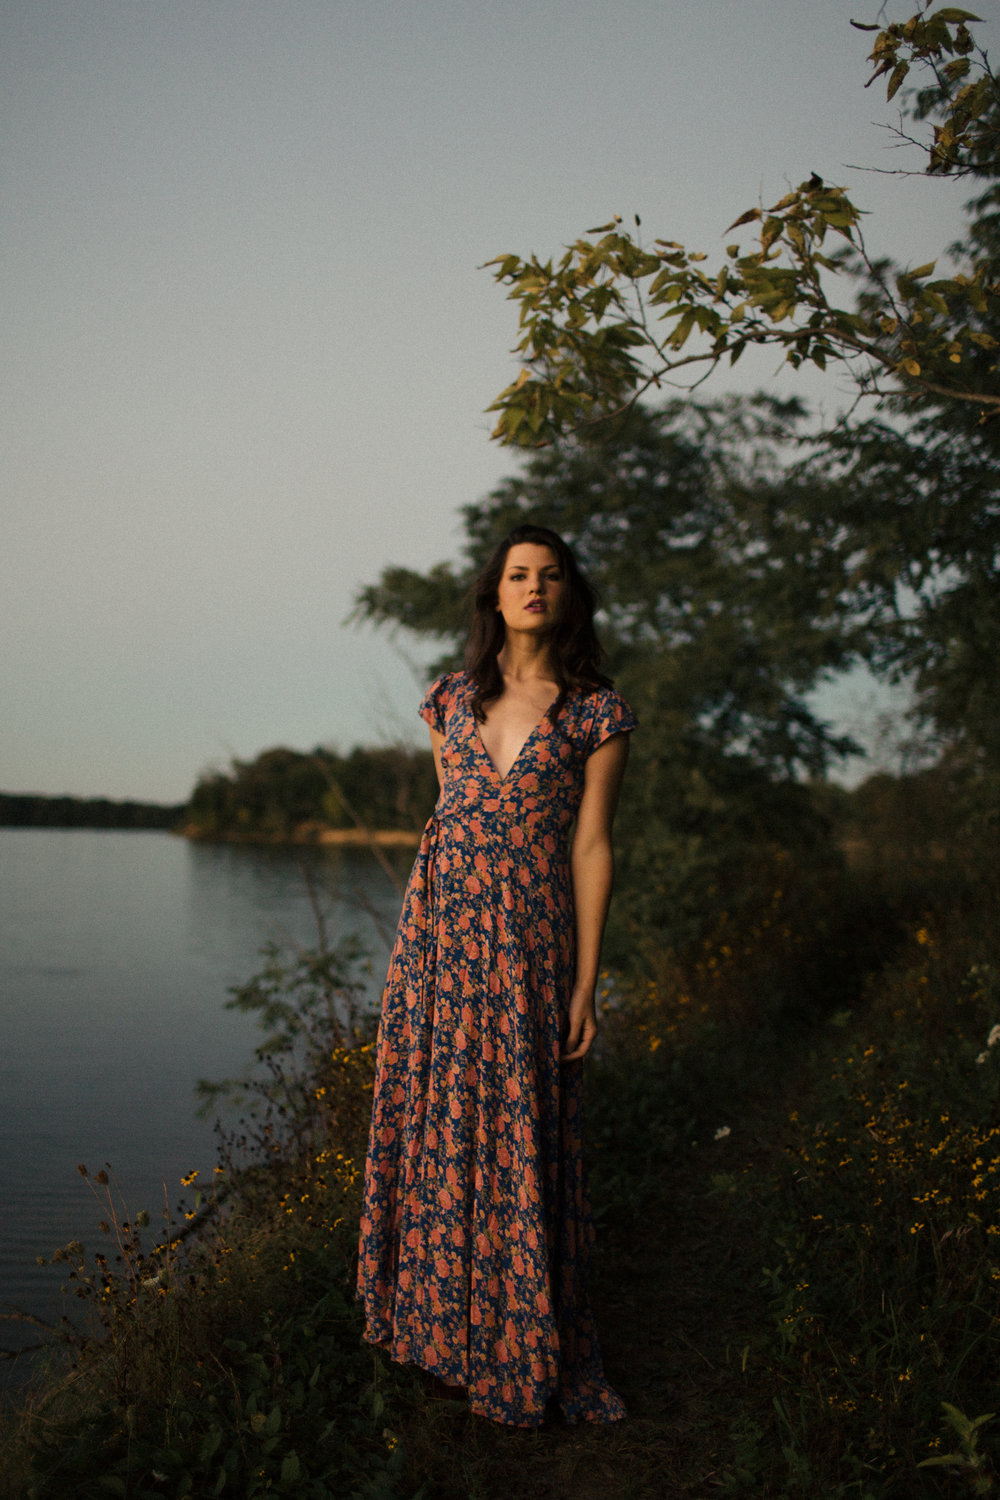 sunset editorial photos floral maxi dress bohemian editorial sarah rose photography ohio